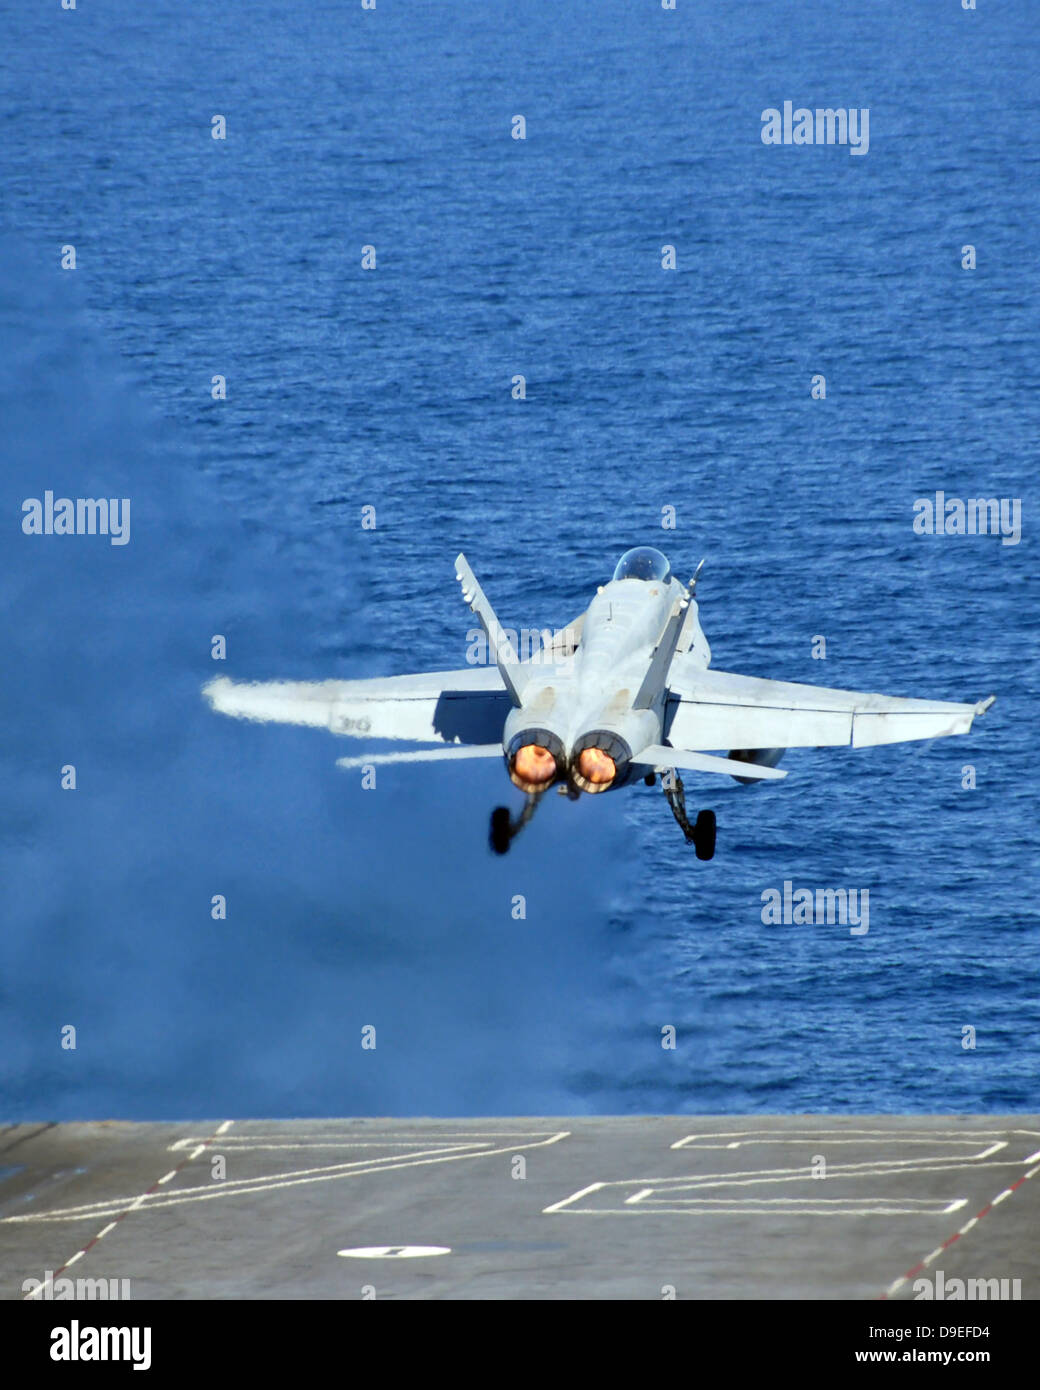 An F/A-18C Hornet launches from the USS Abraham Lincoln. - Stock Image